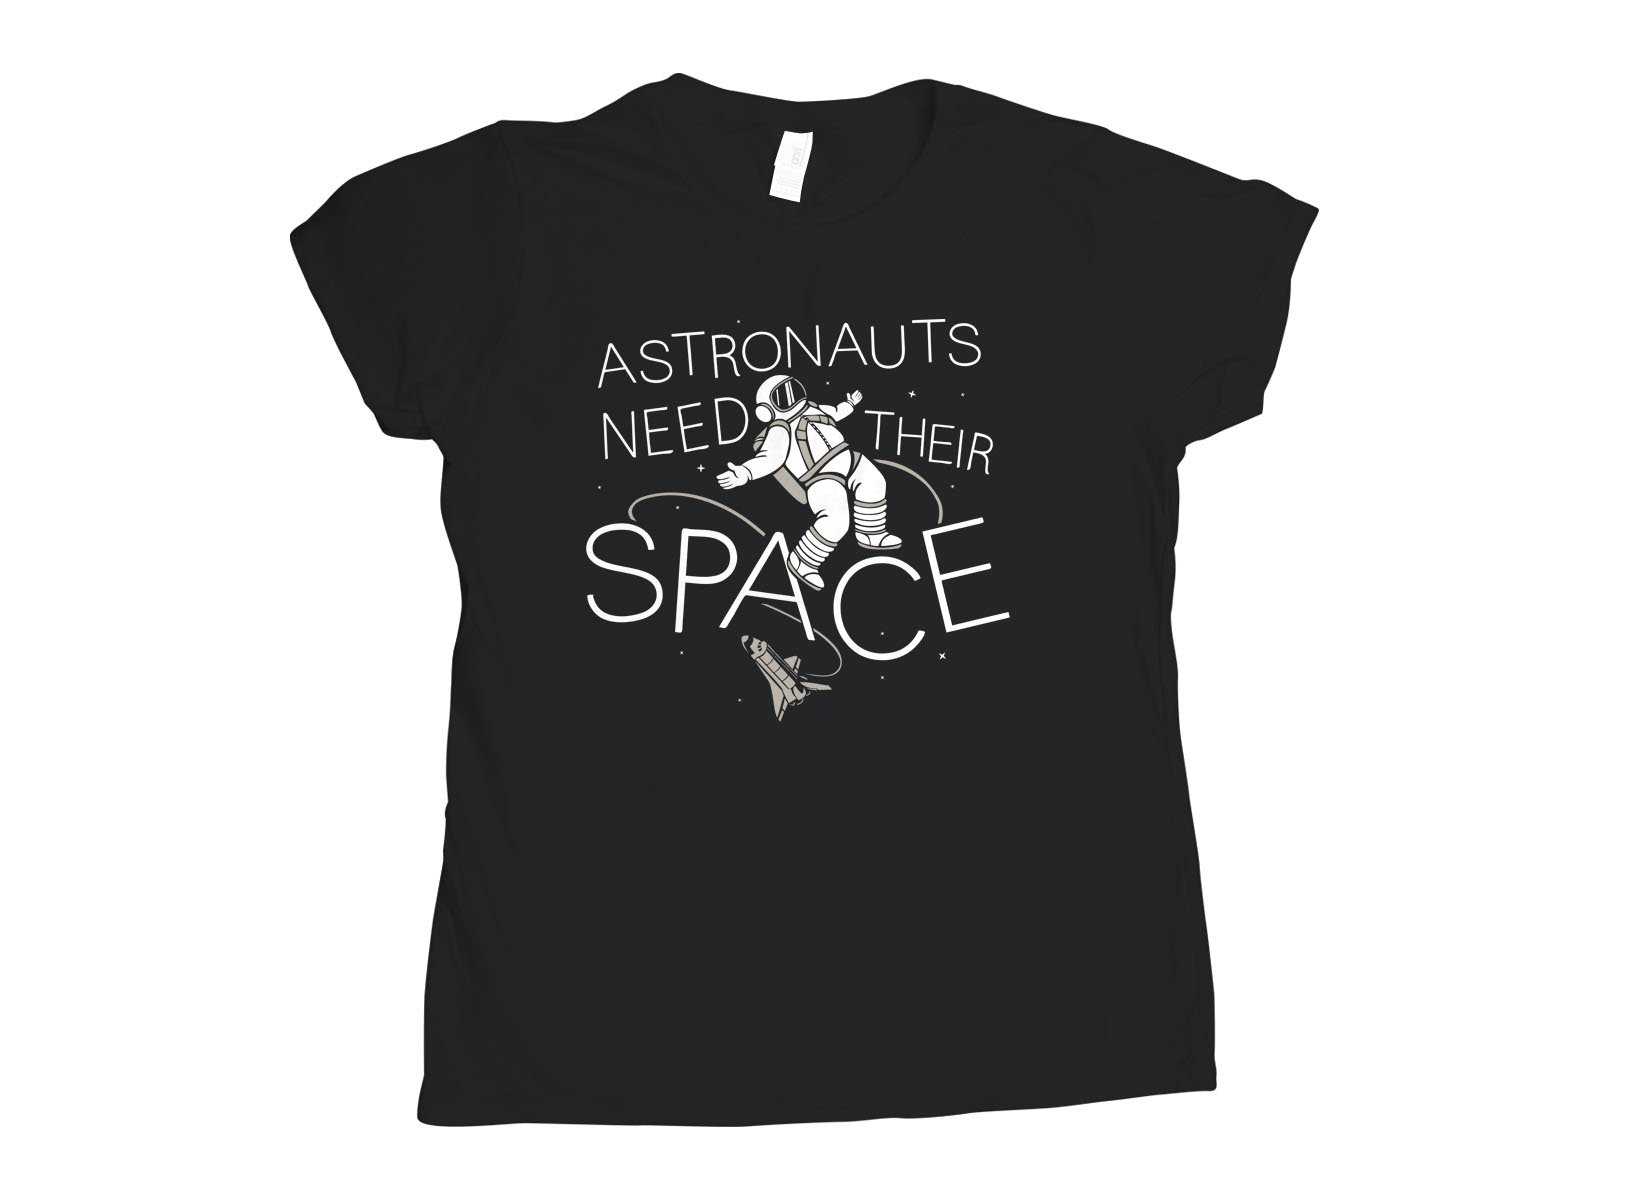 Astronauts Need Their Space on Womens T-Shirt